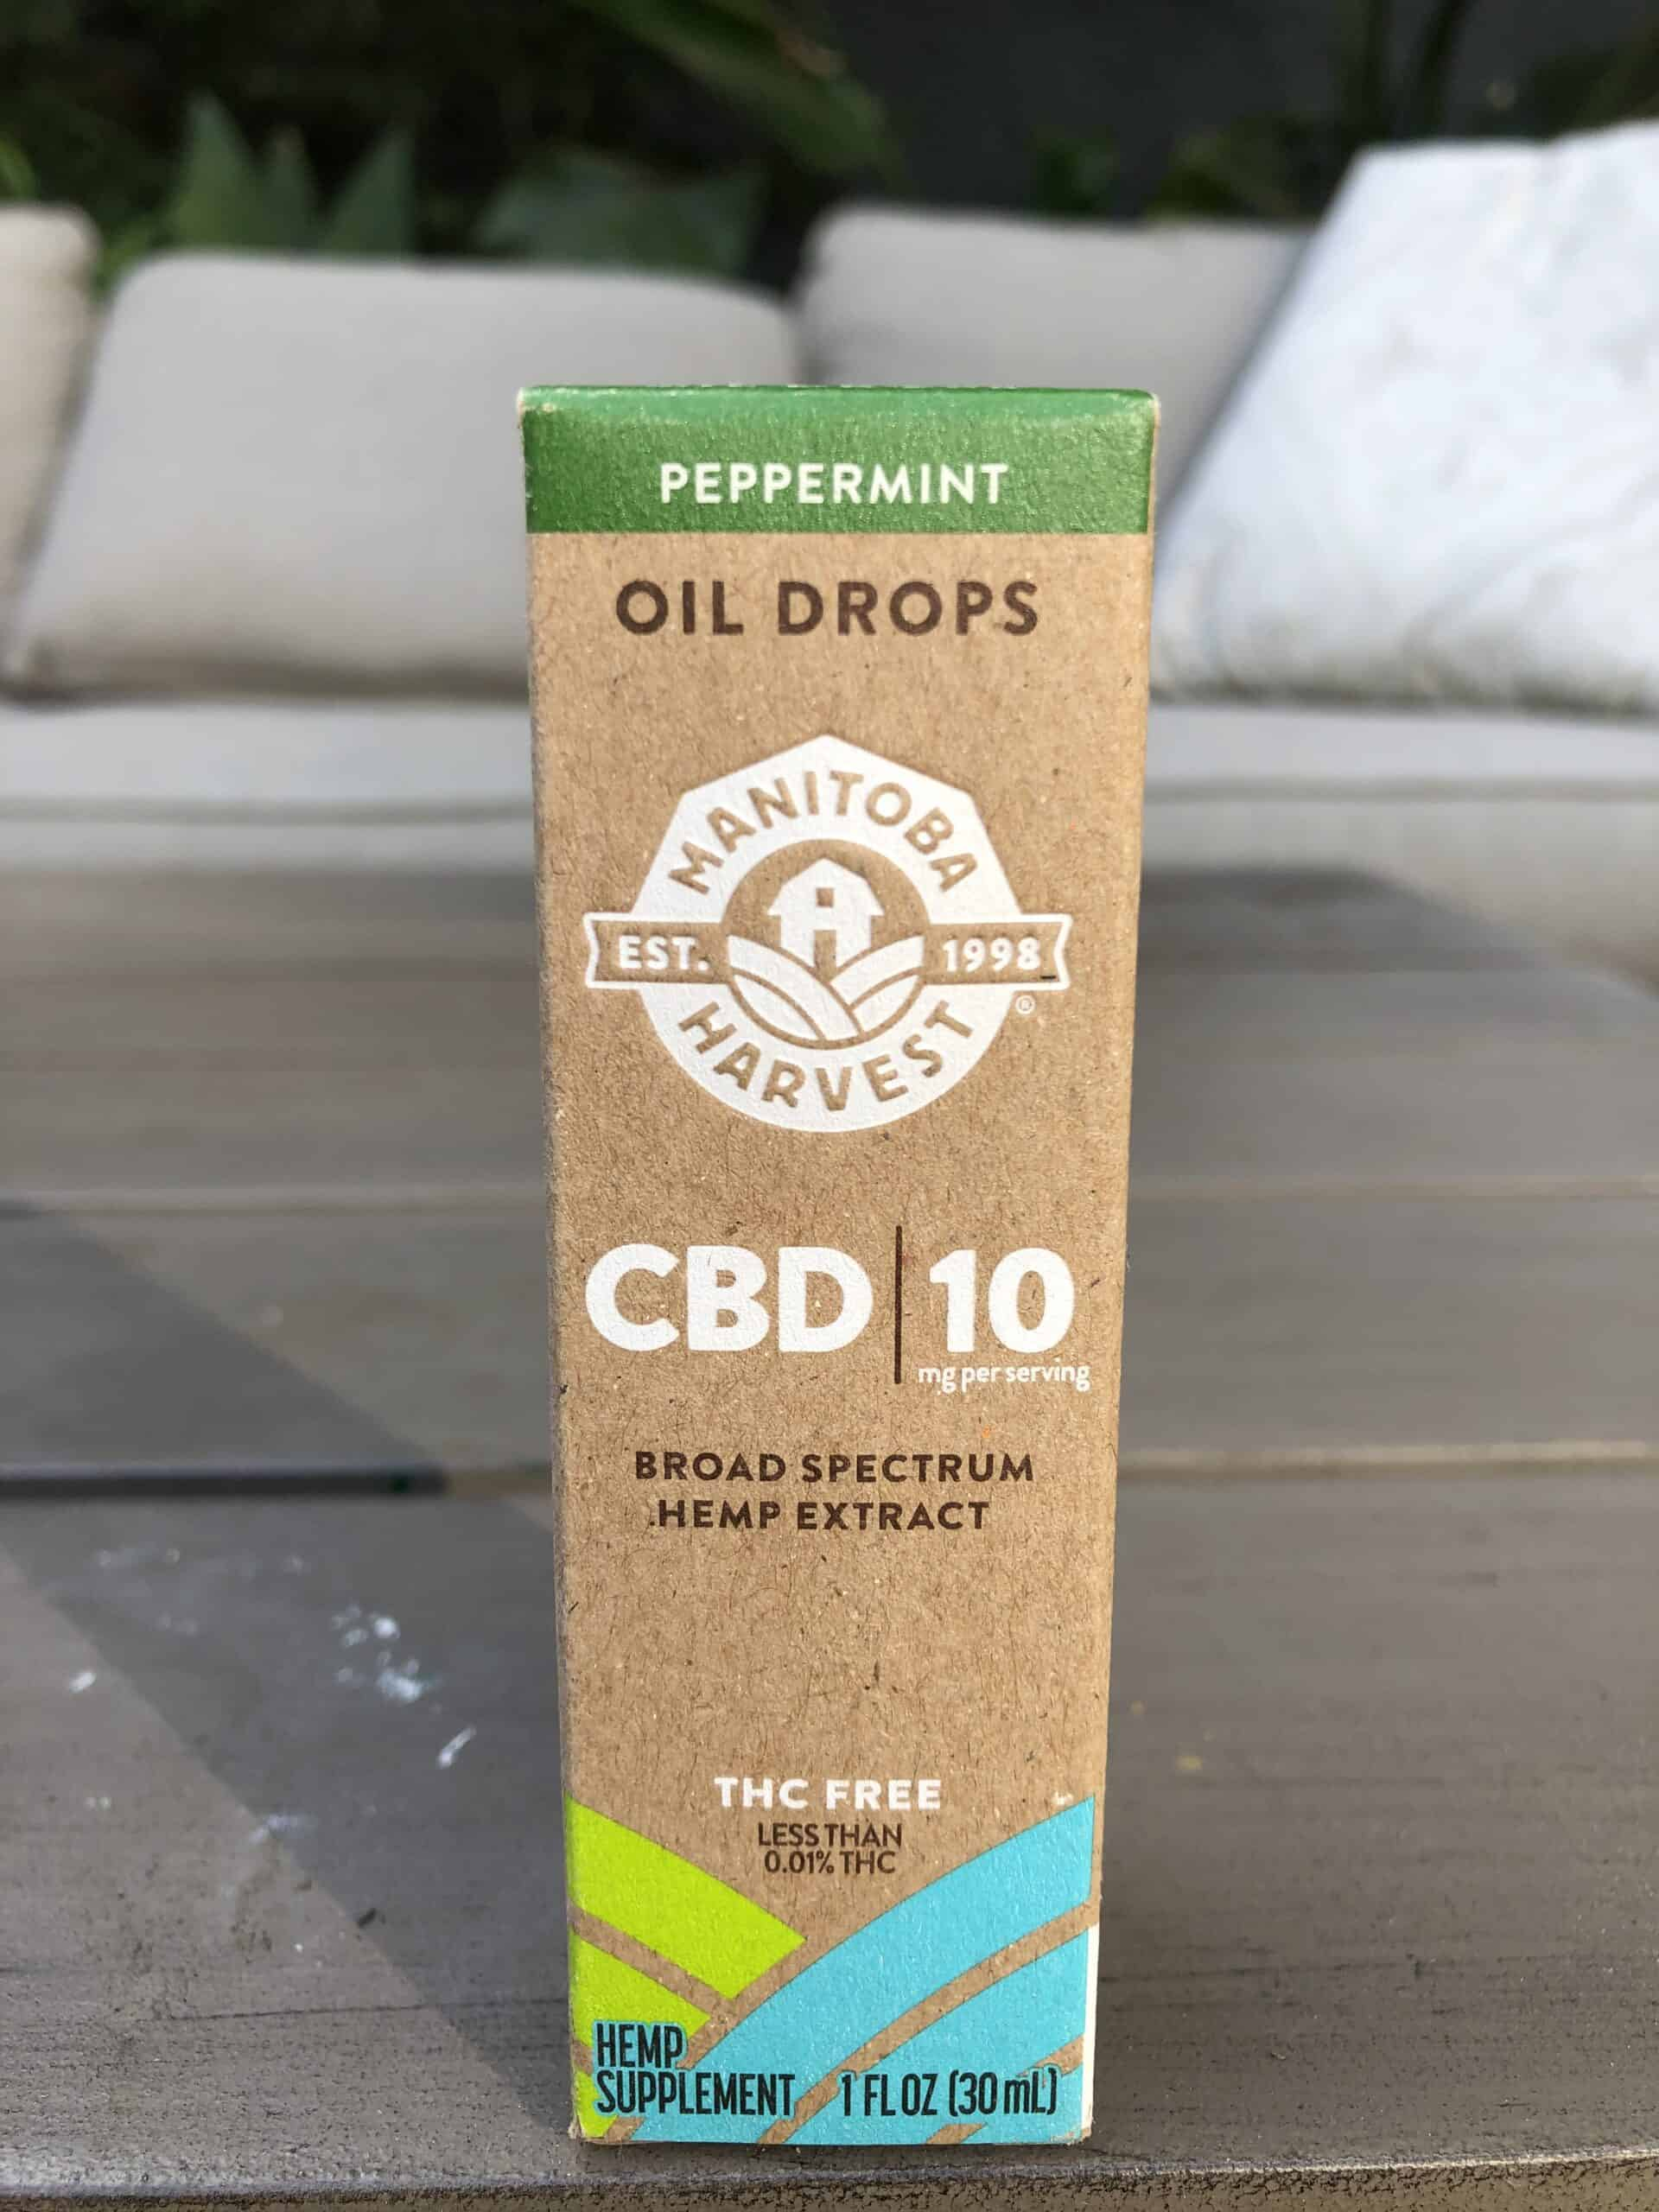 MANITOBA HARVEST: PEPPERMINT CBD OIL DROPS - 300 MG